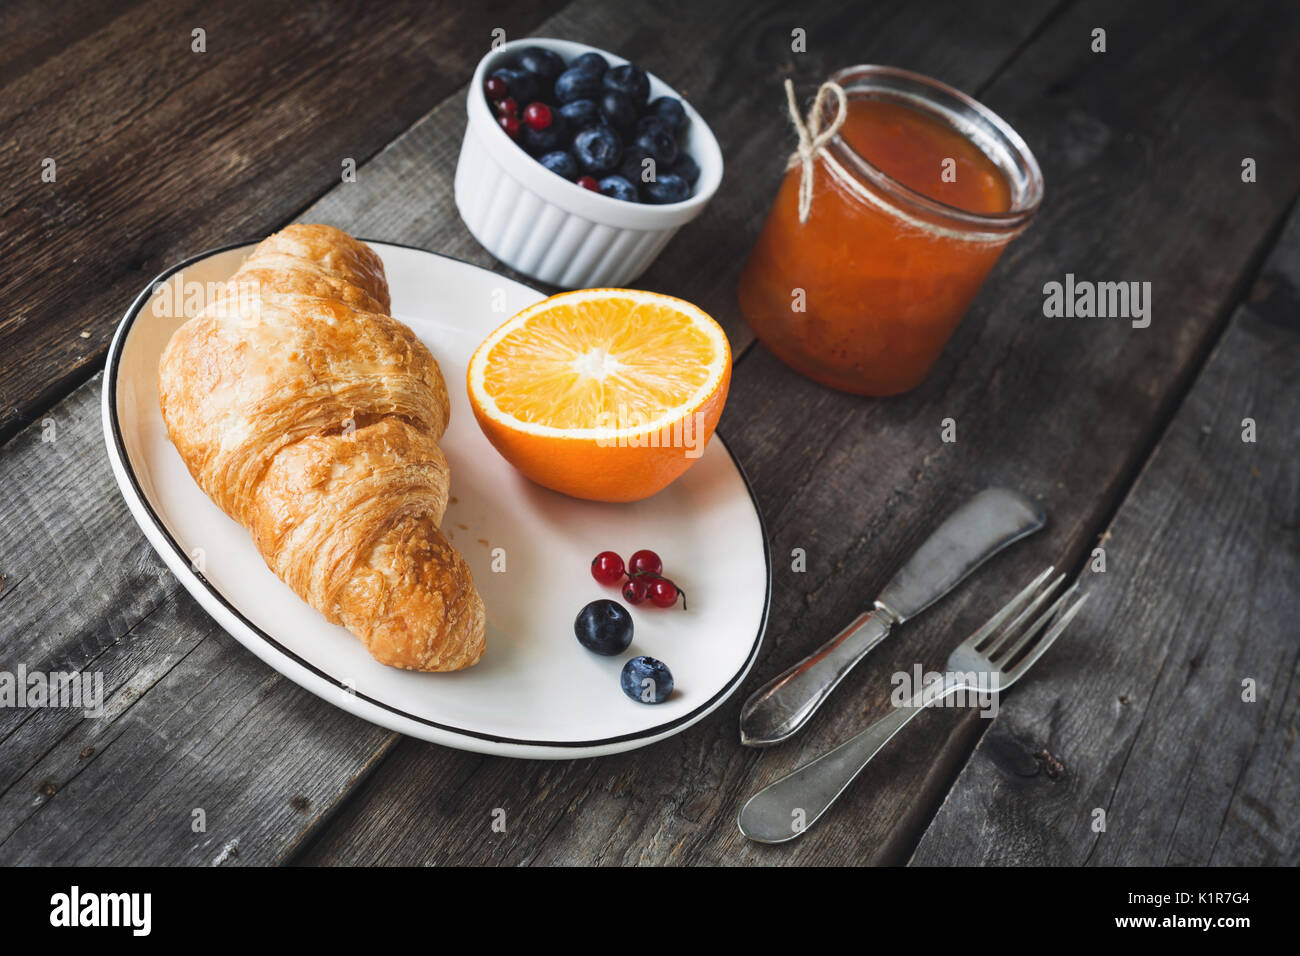 Fresh croissant, blueberries, orange and apricot jam on rustic wooden table. Angle view. Continental breakfast - Stock Image